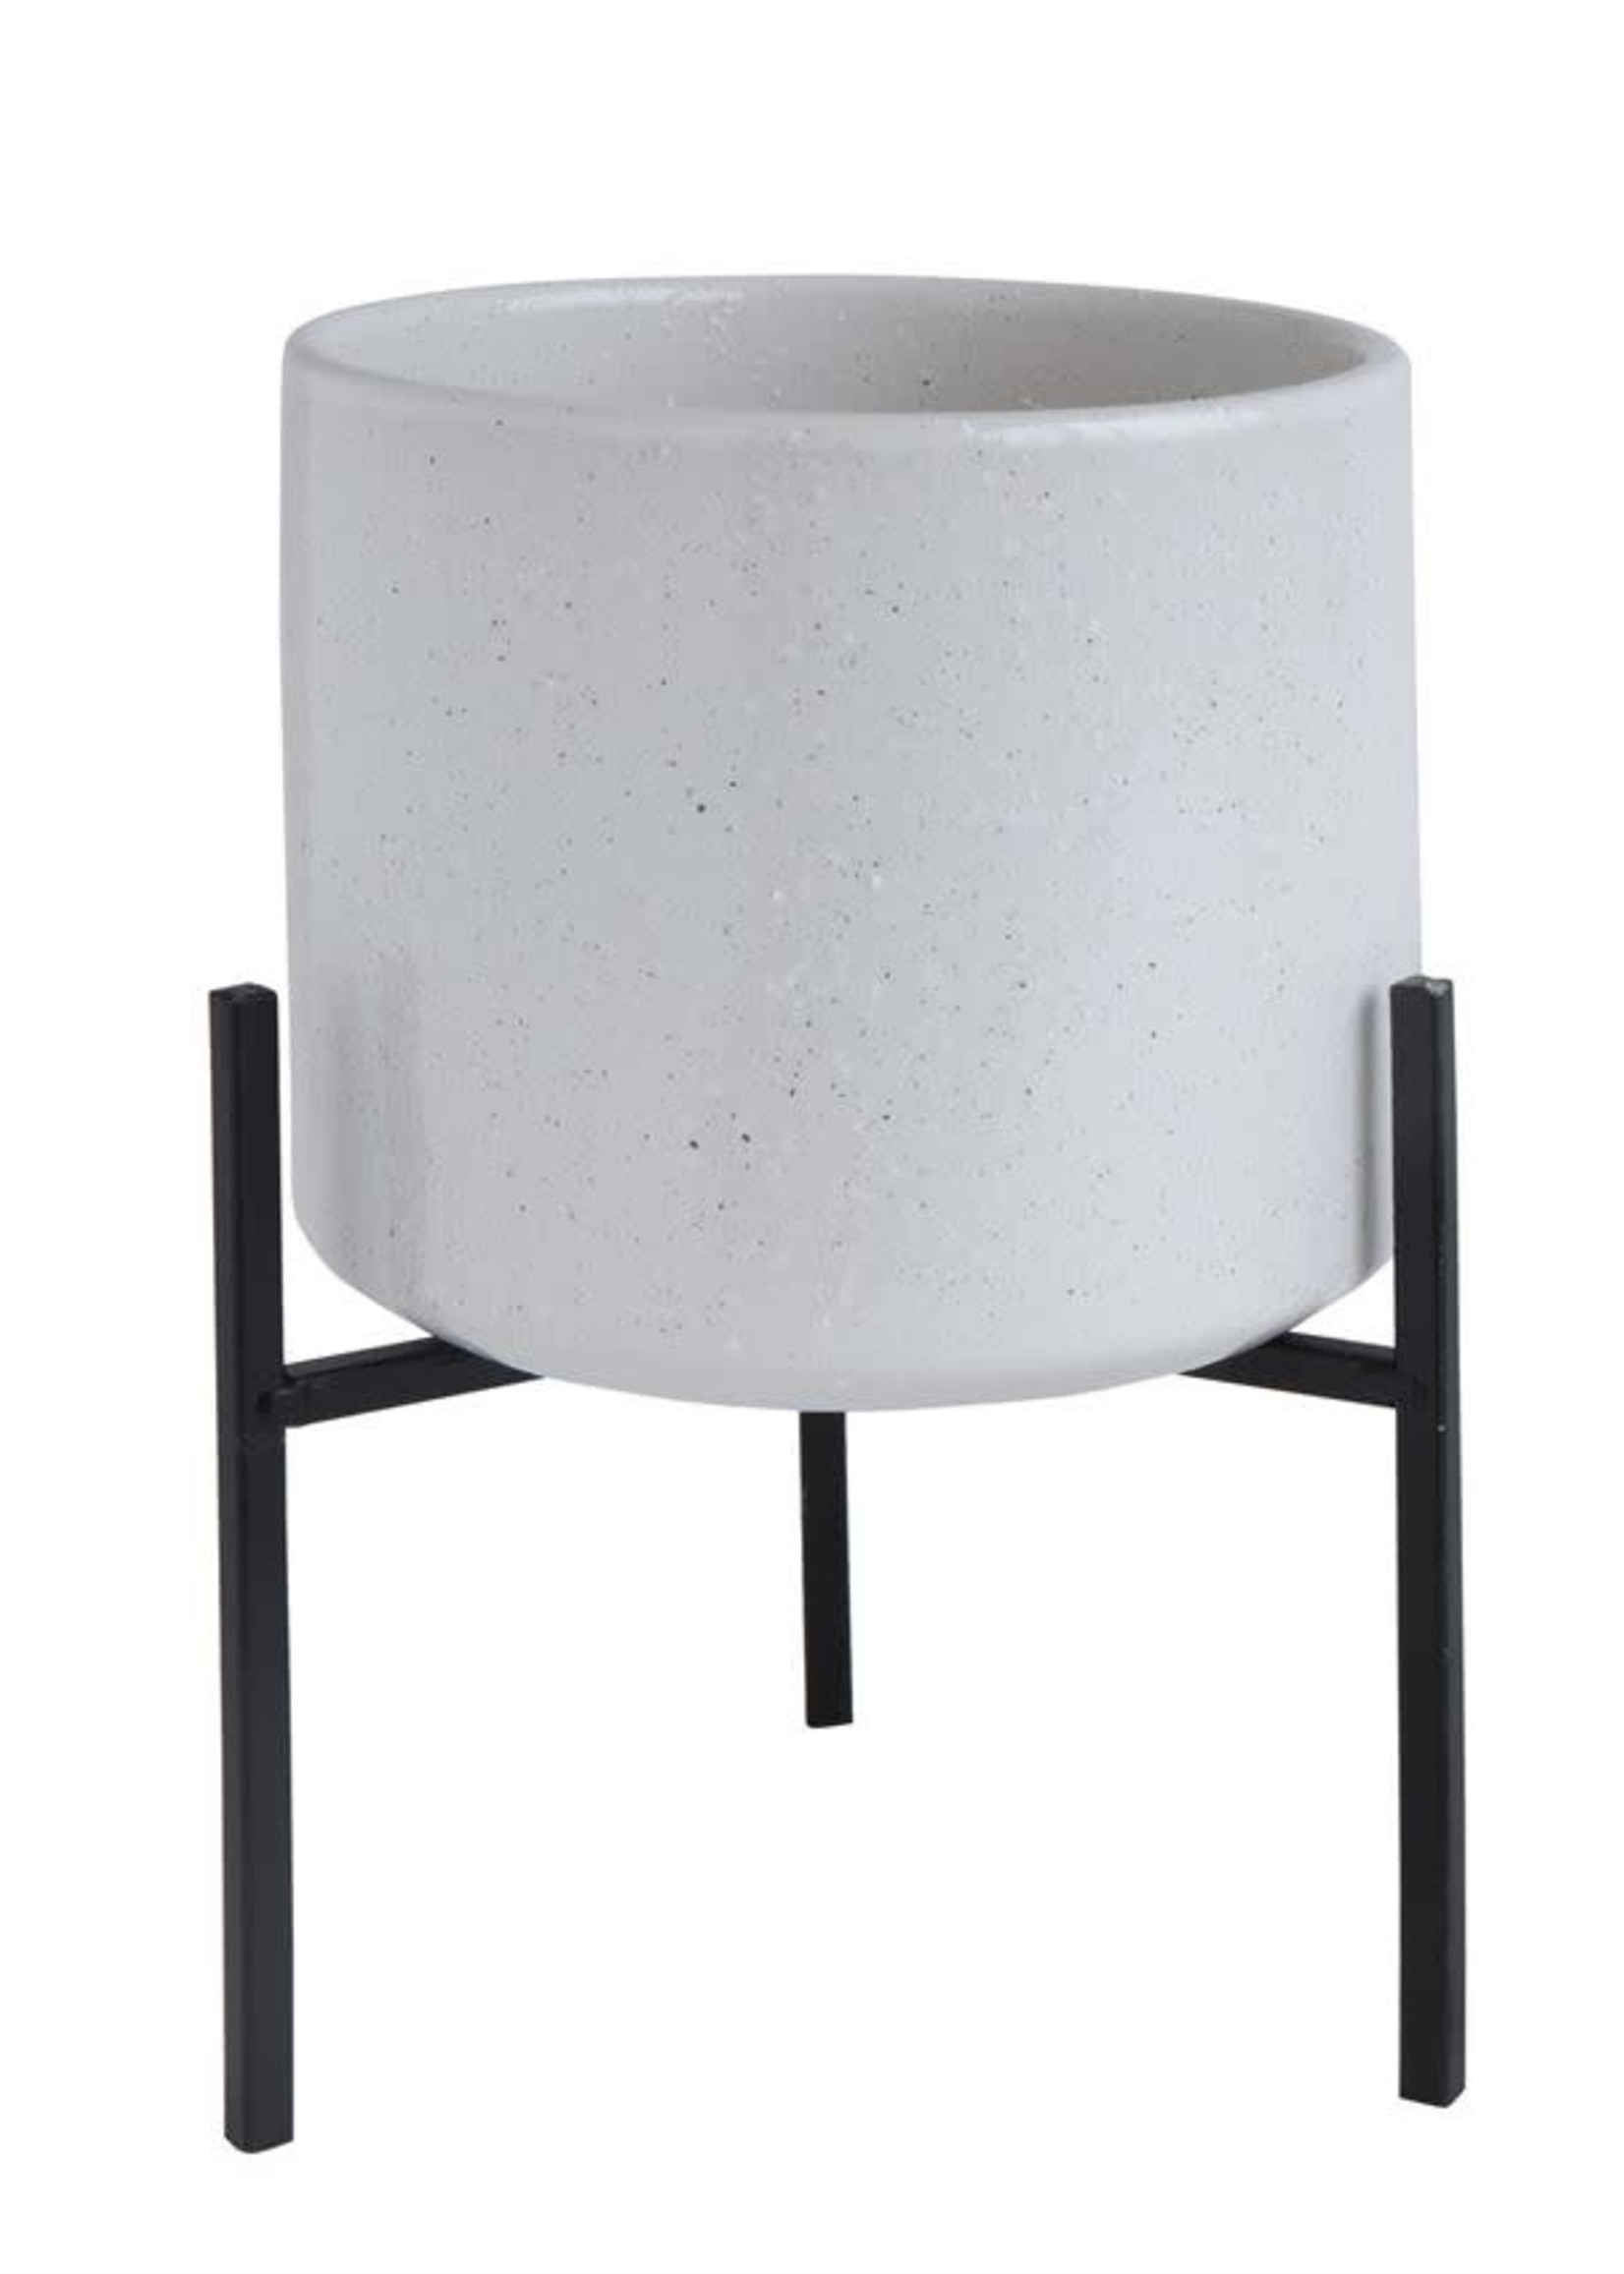 BLOOMINGVILLE BLOOMINGVILLE WHITE POT WITH BLACK STAND